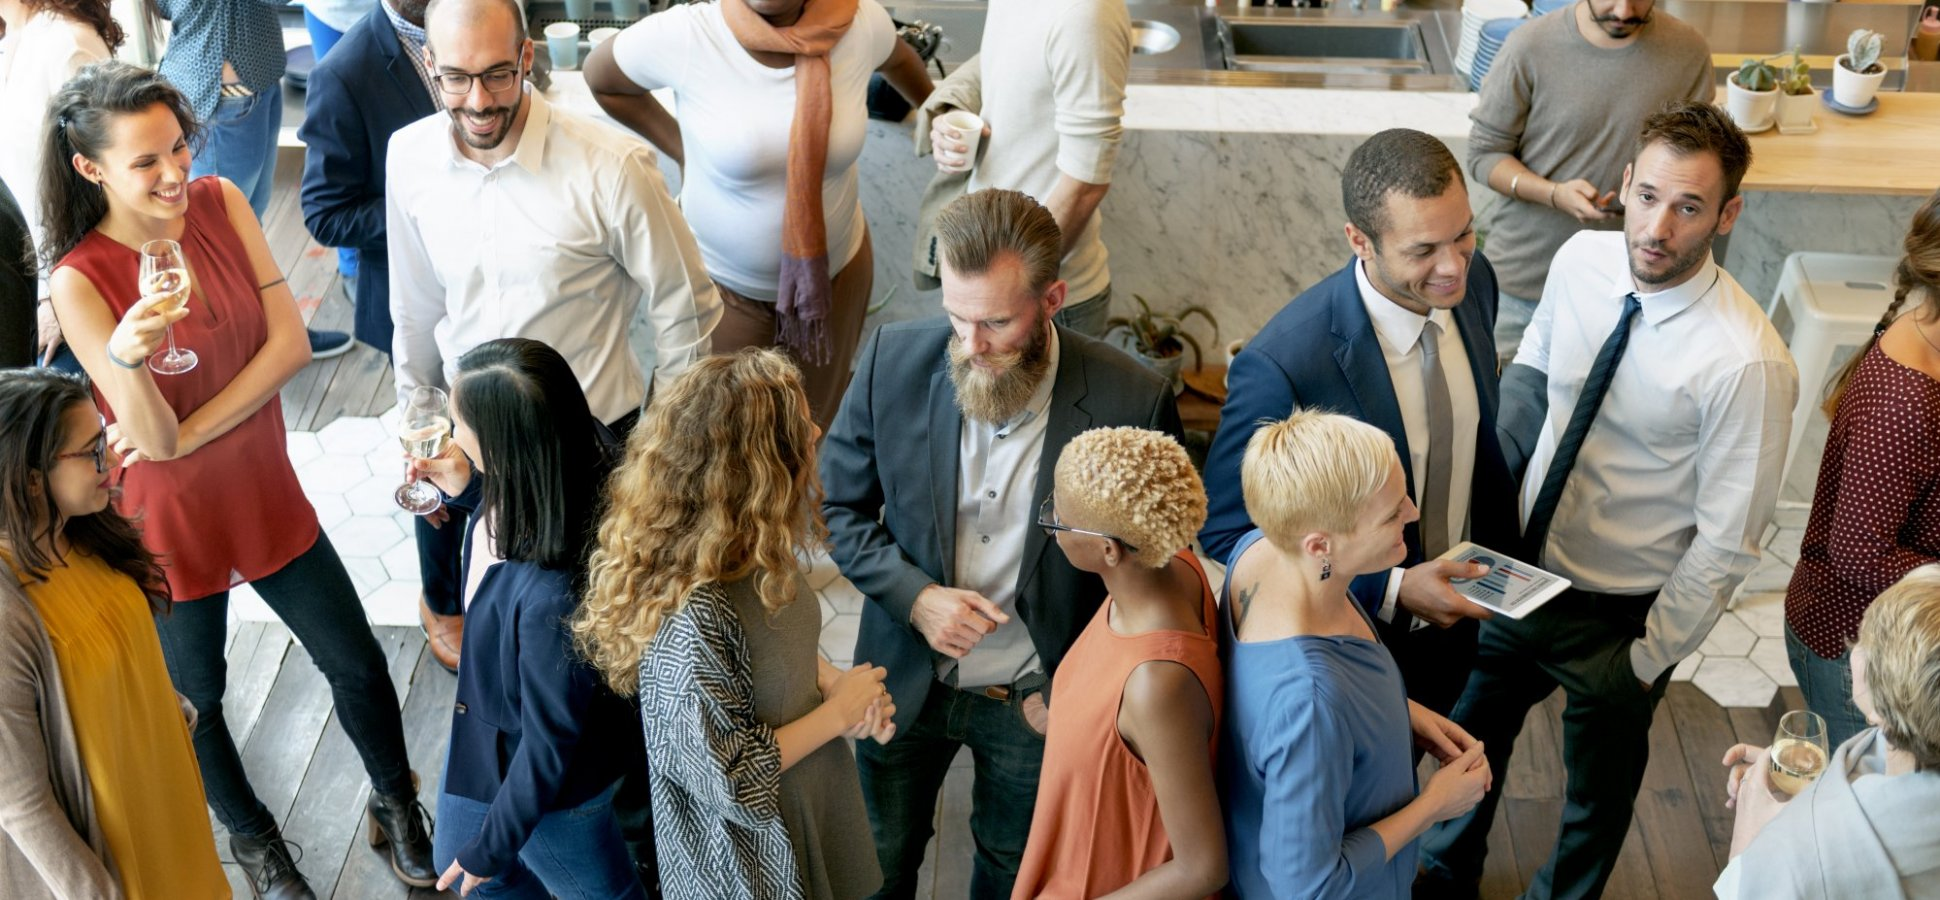 Why You Have to Stop Networking If You Want to Succeed